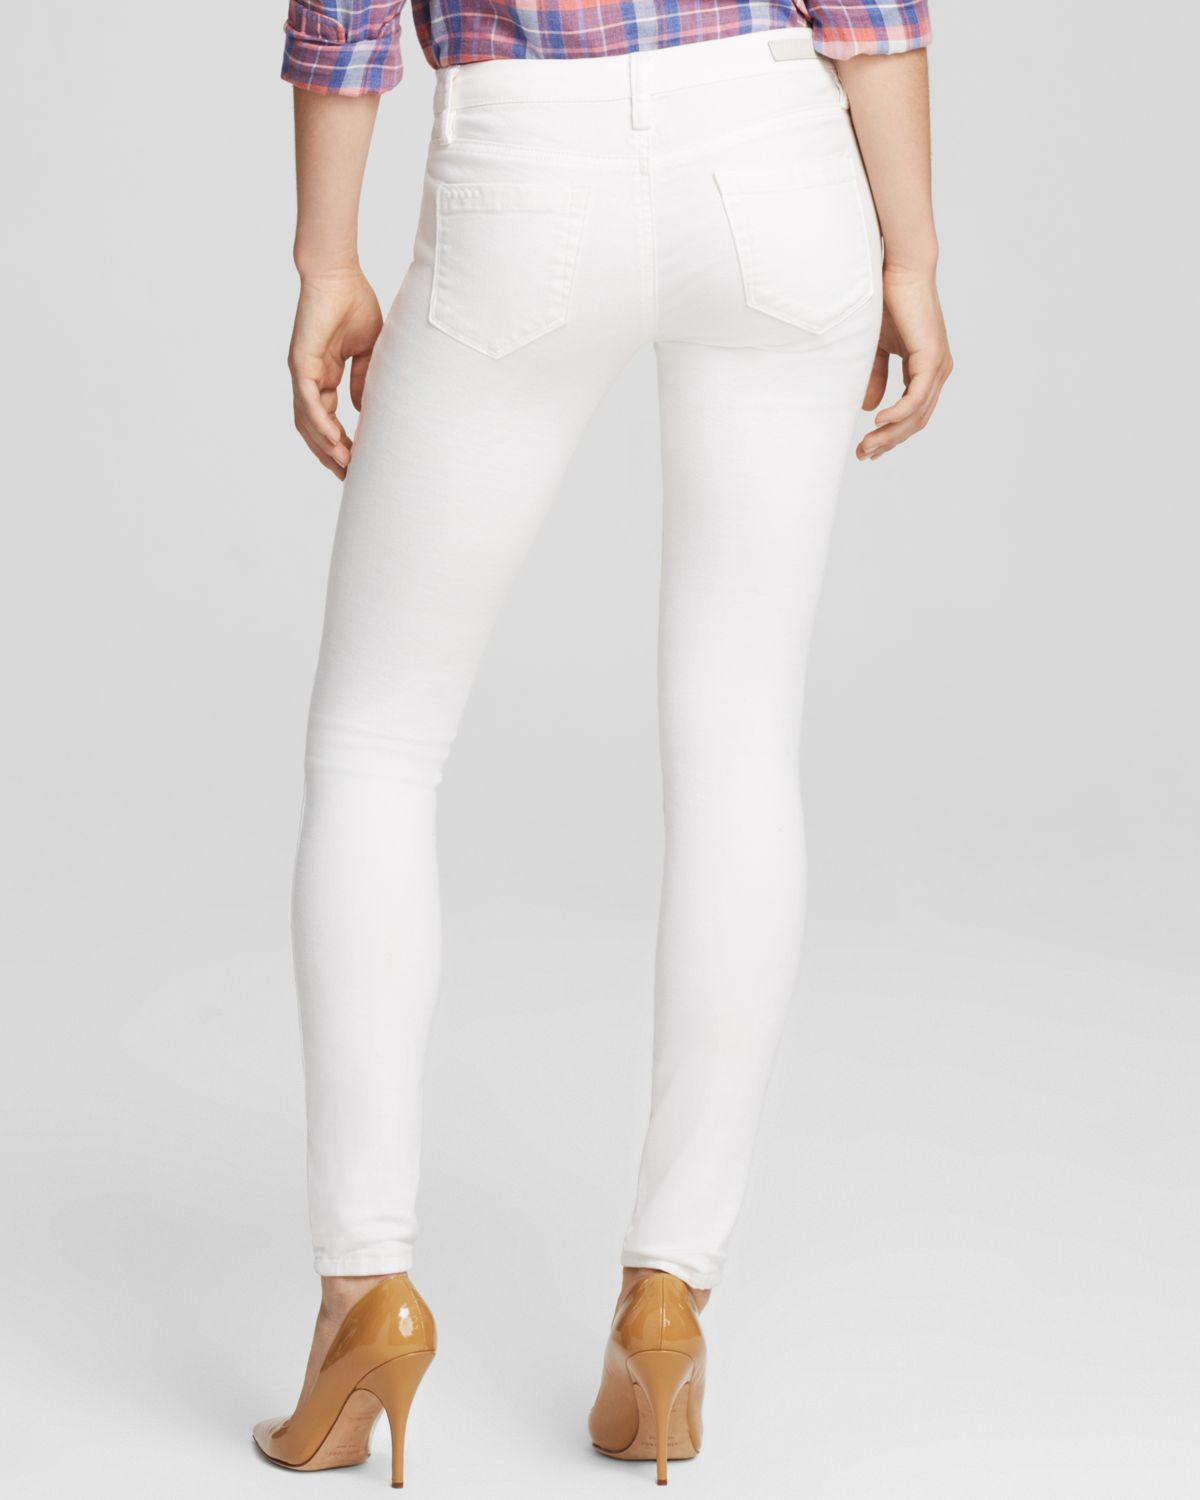 Blank Jeans - Shredded Skinny In White in White | Lyst